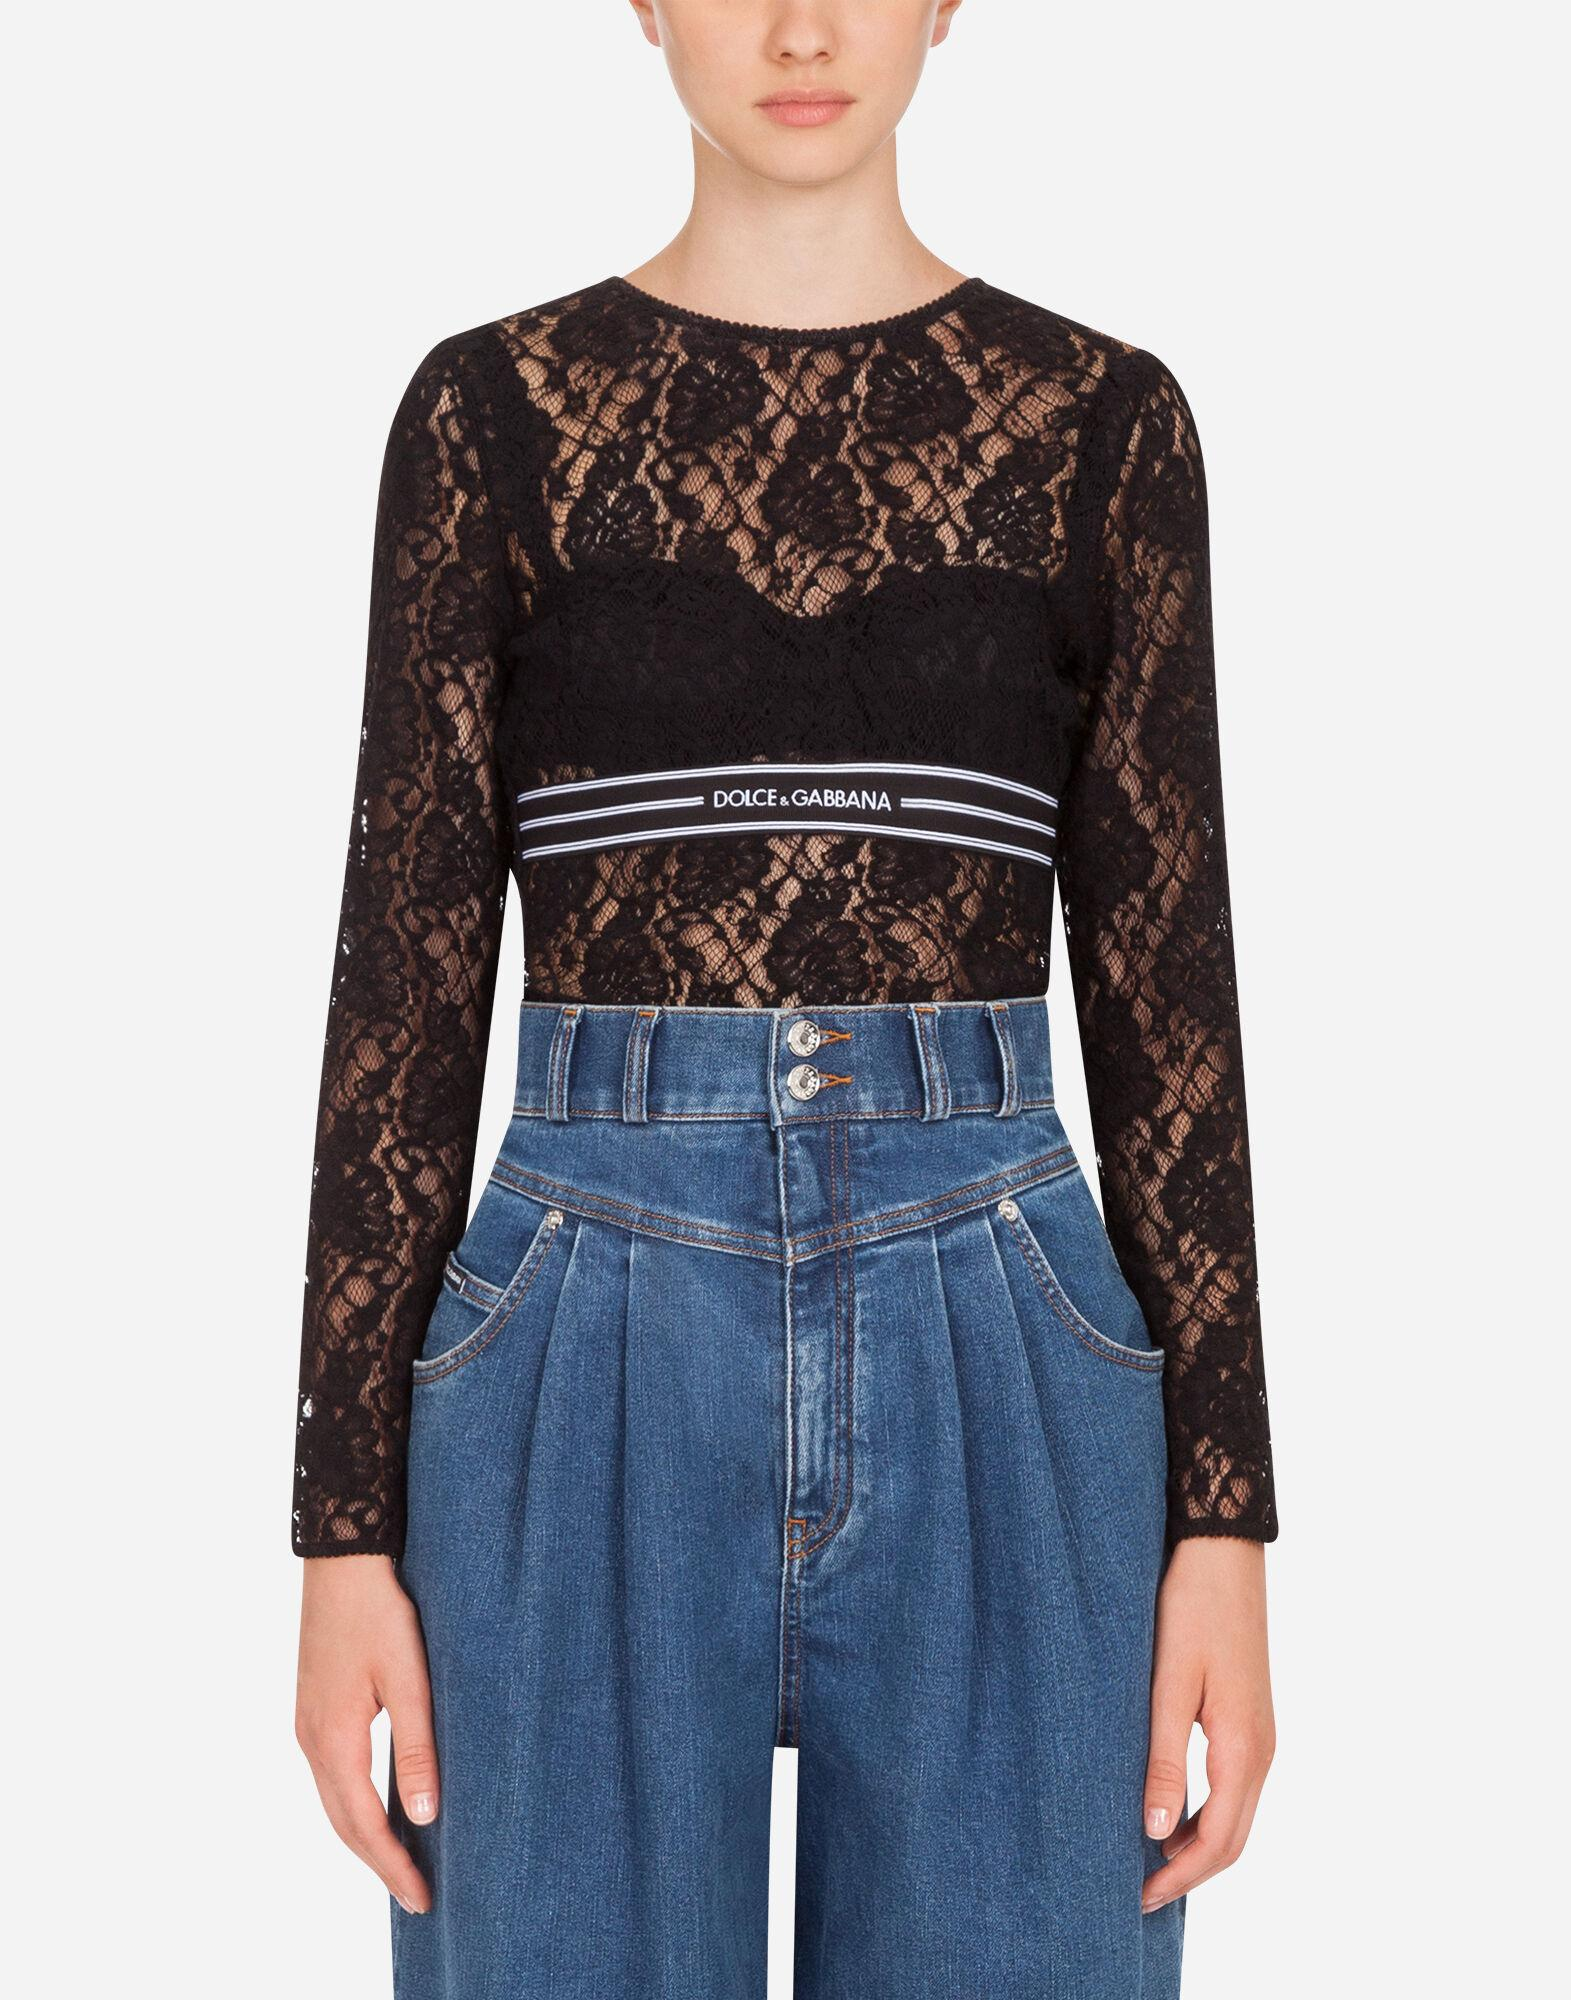 Long-sleeved lace top with branded elastic